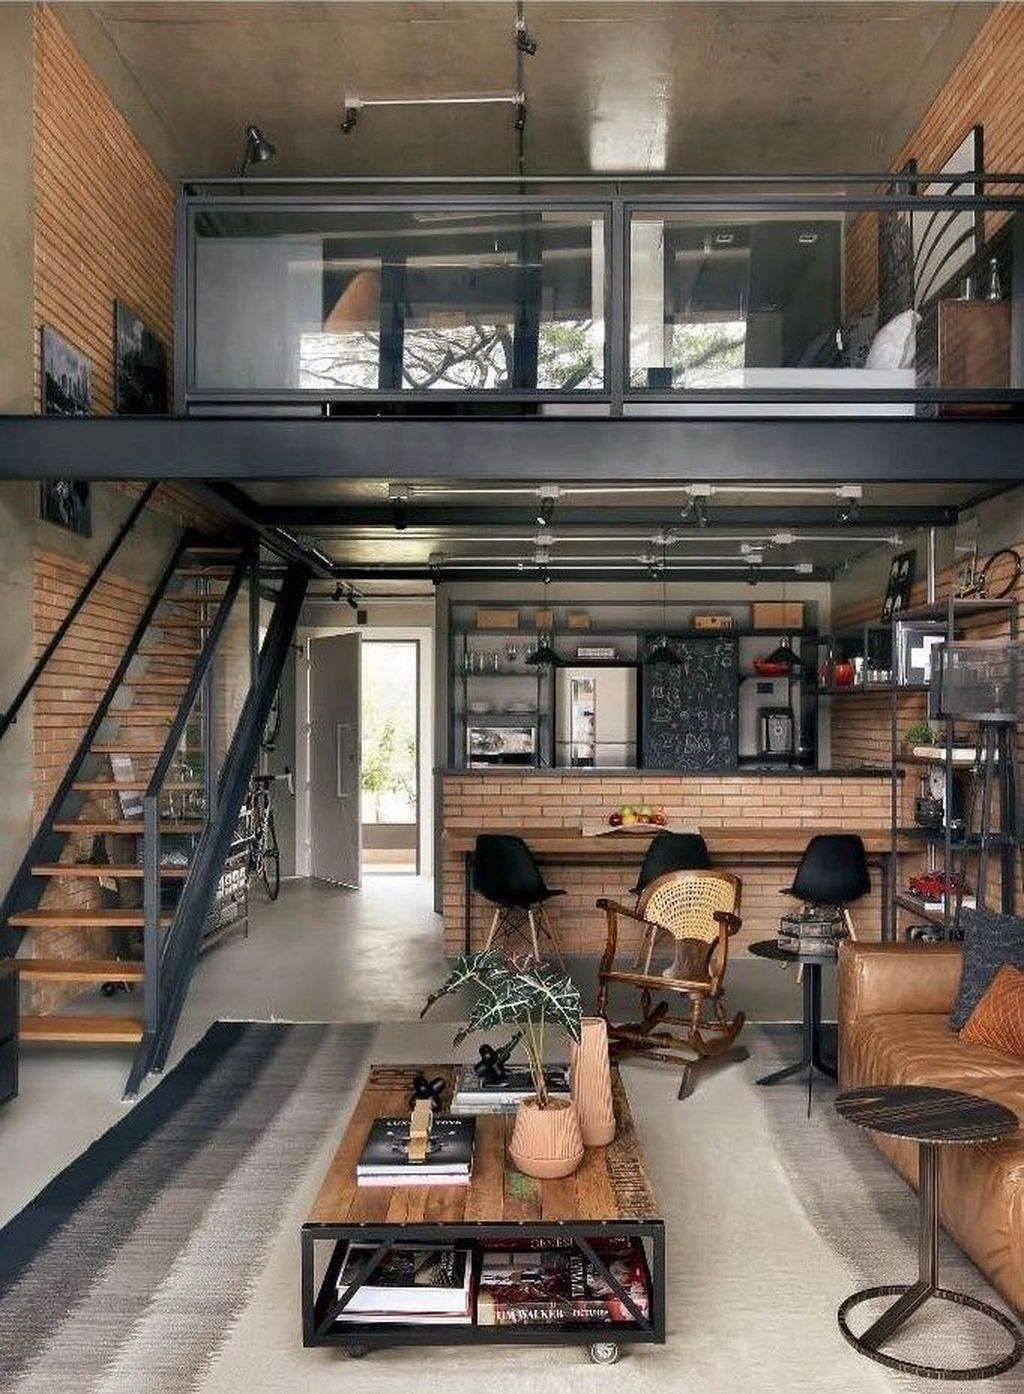 42 The Best And Unique Tiny House Design Ideas Tiny House Design Loft Design Loft House